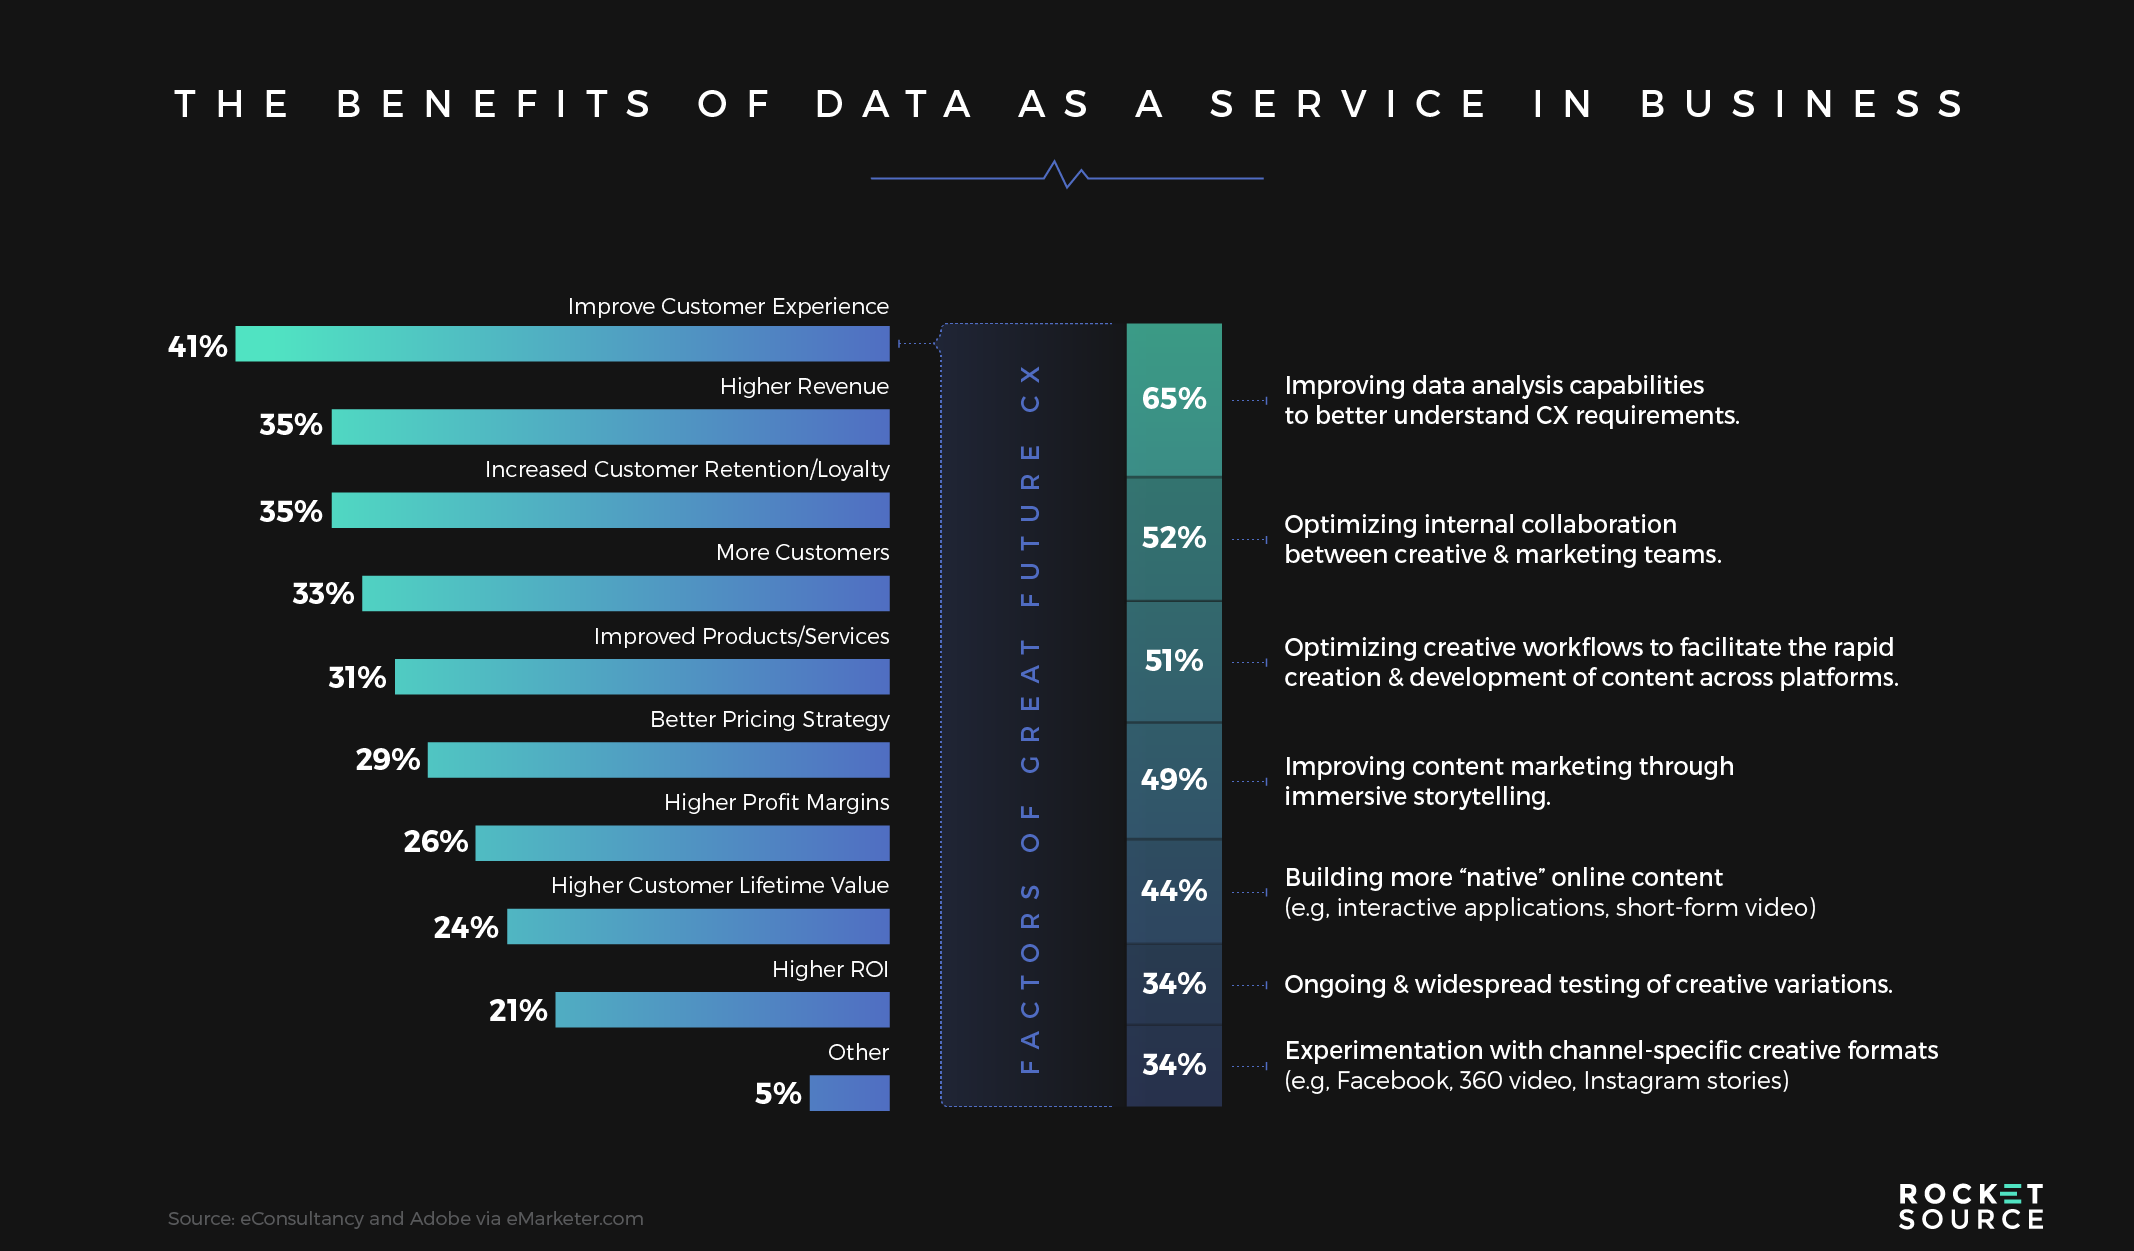 Benefits of Data as a Service in Business